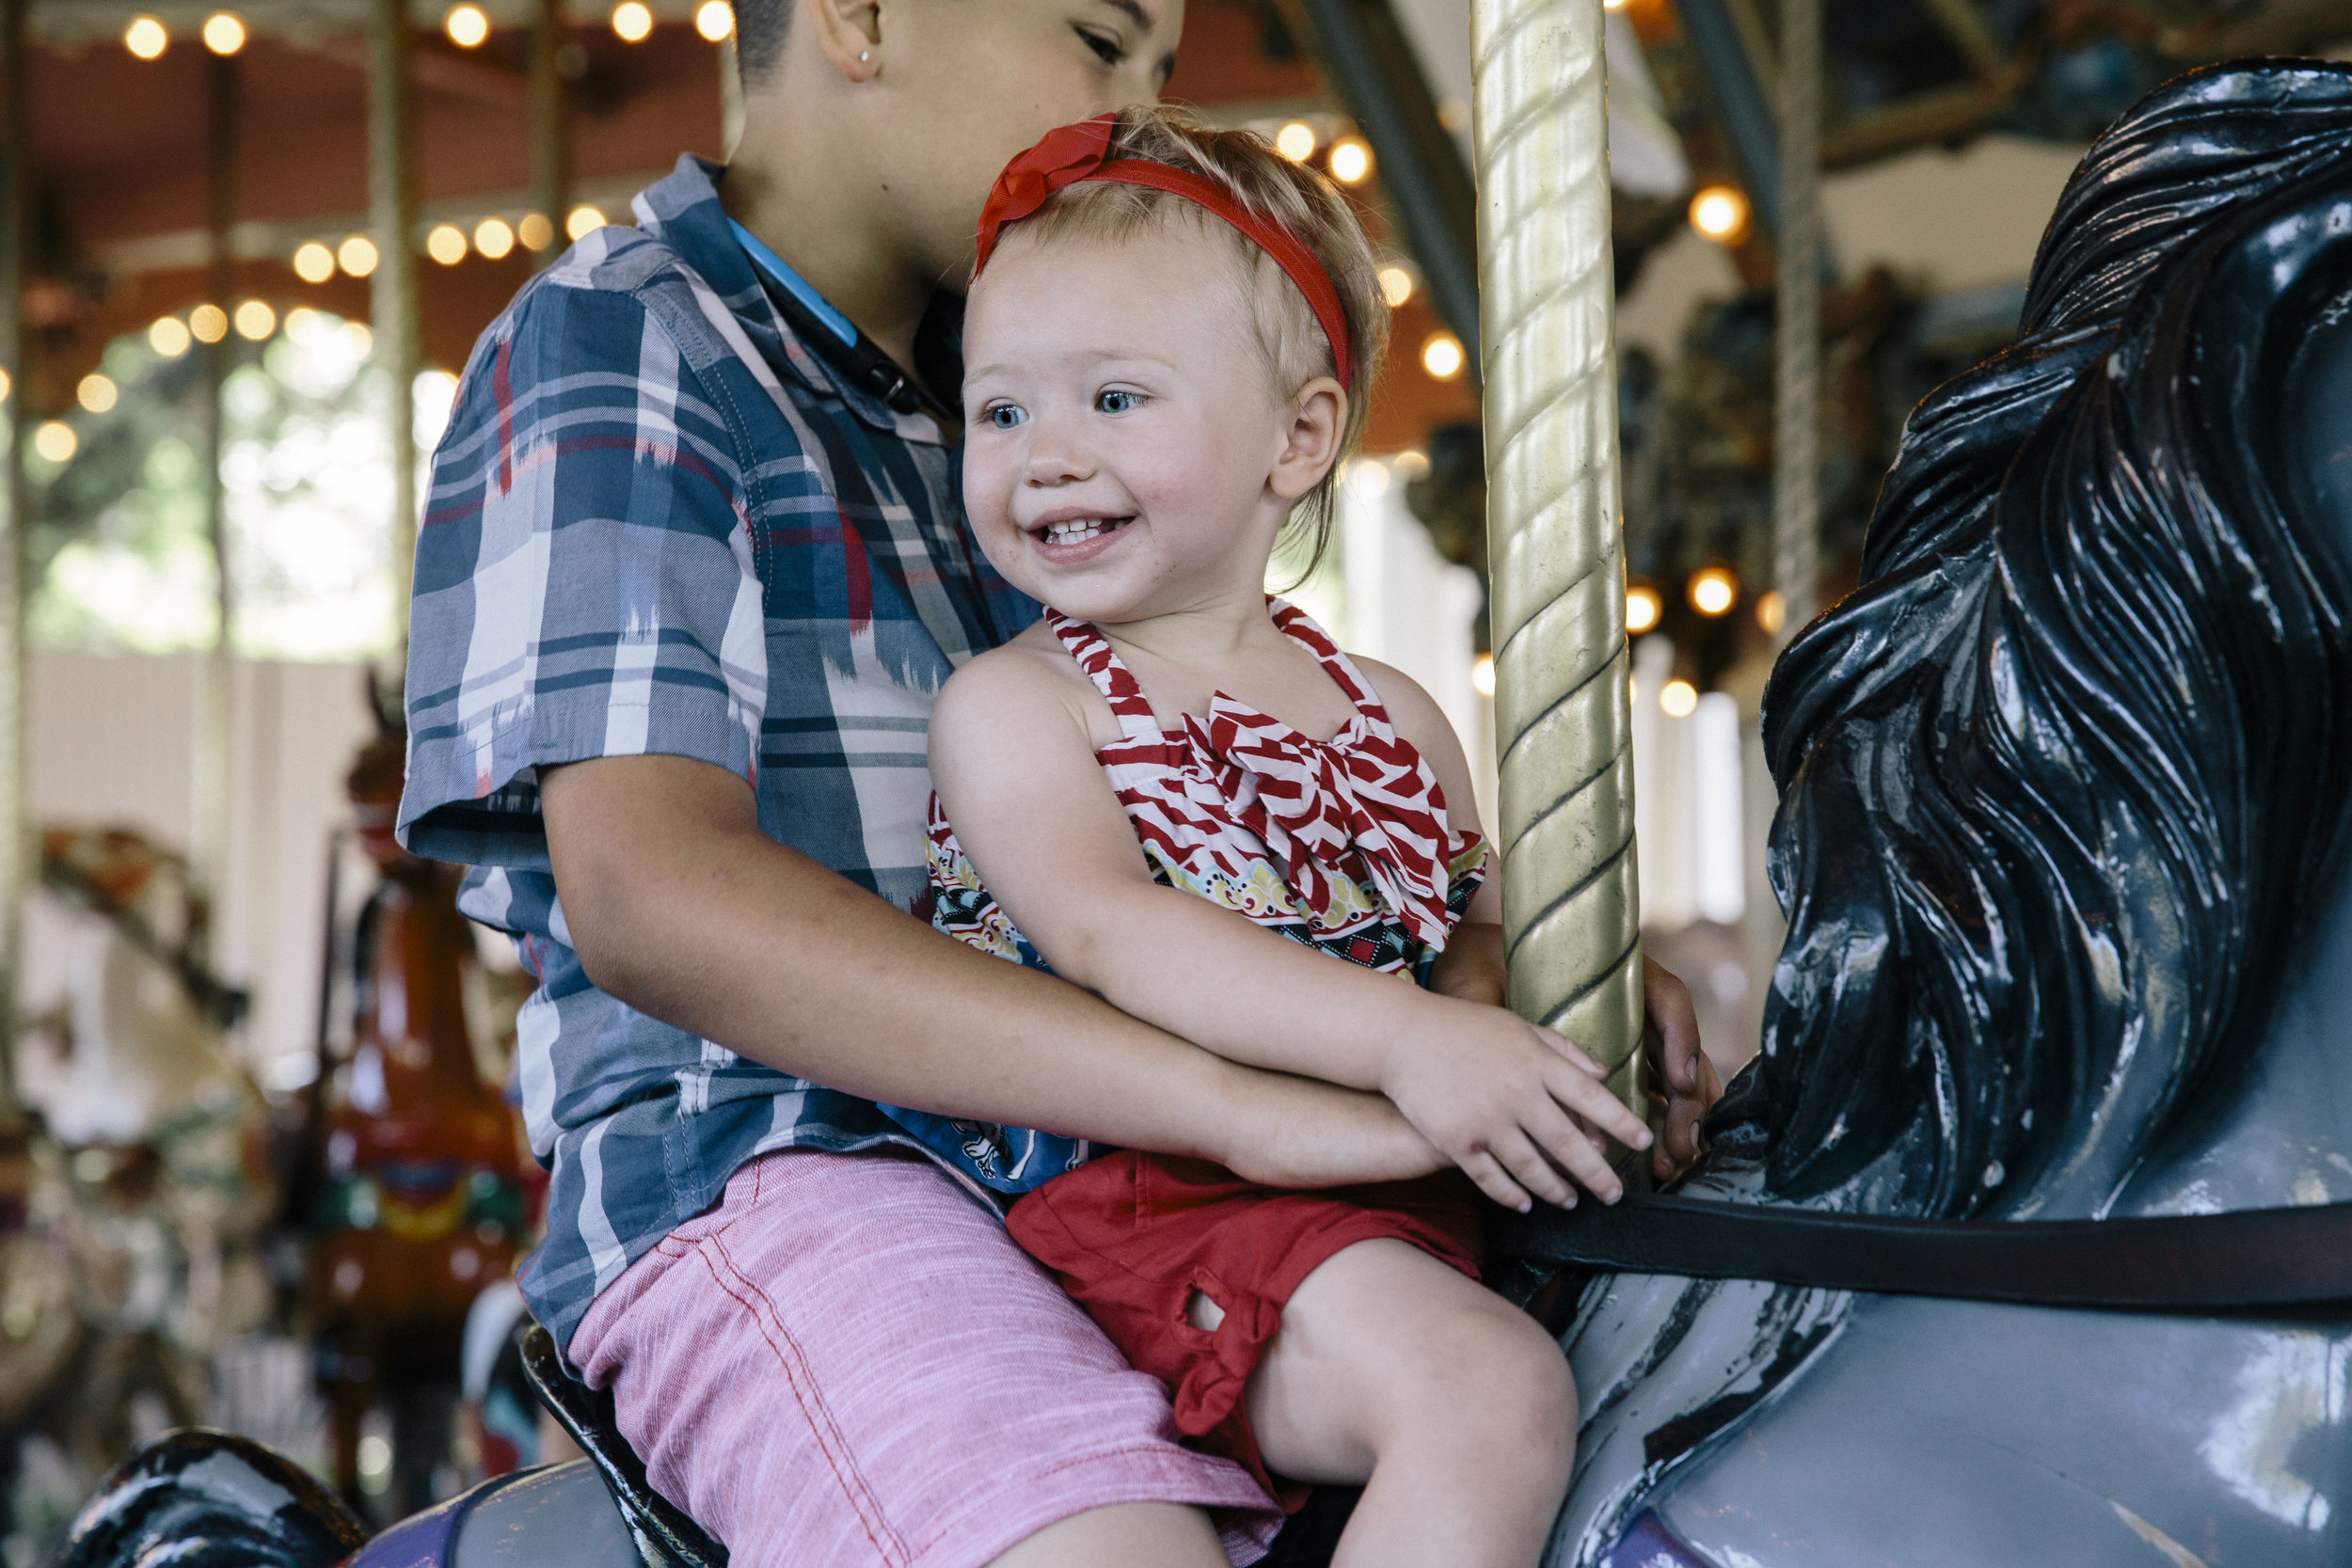 DFW_Six_Flags_Family_Photography (6 of 13).jpg